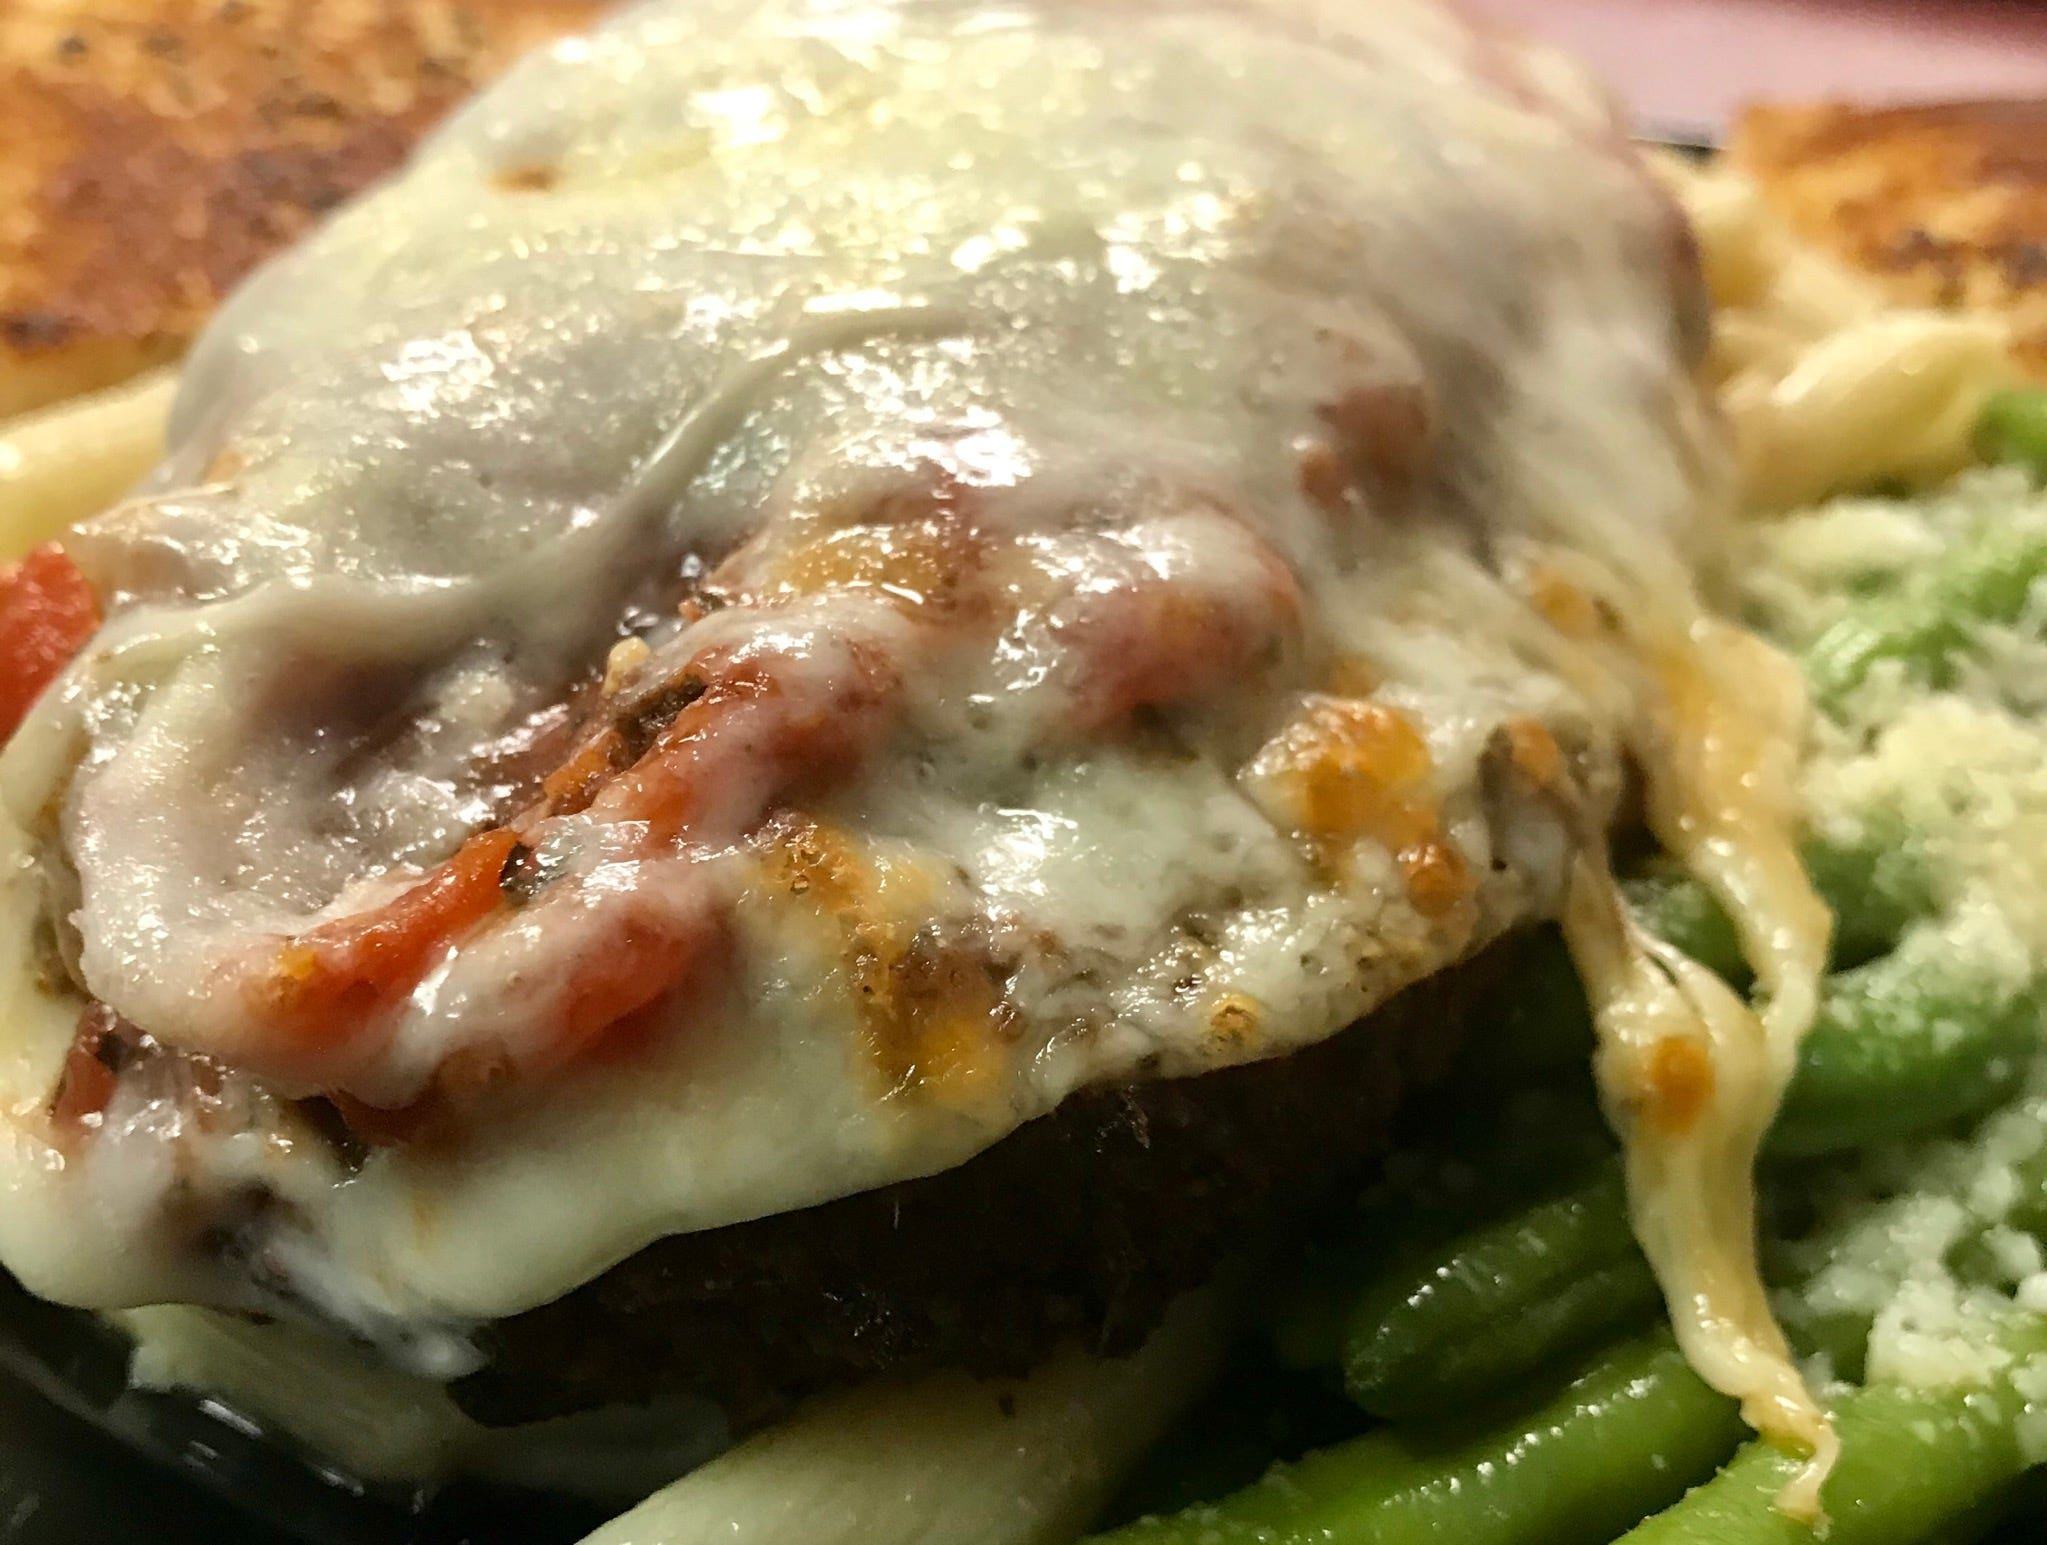 The chicken parmesan is served atop a bed of garlic butter ziti pasta with green beans and garlic bread.